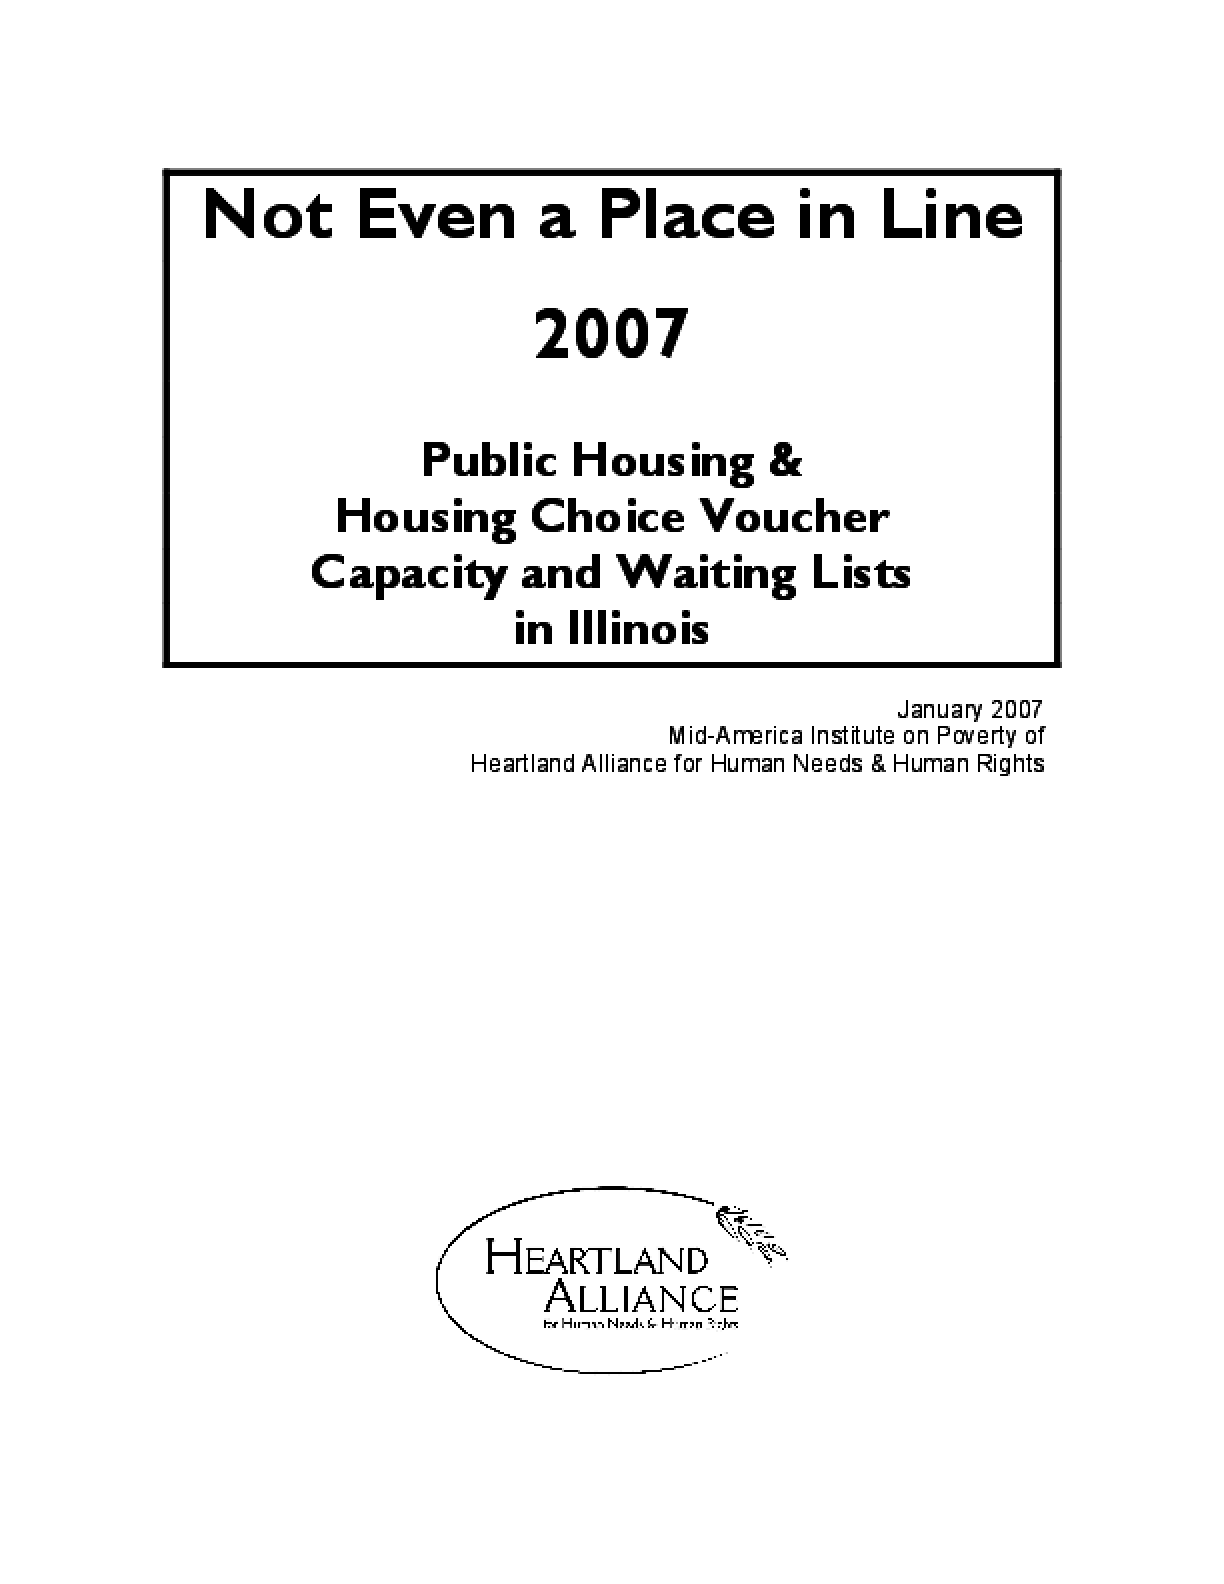 Not Even a Place in Line 2007: Public Housing & Housing Voucher Capacity and Waiting Lists in Illinois